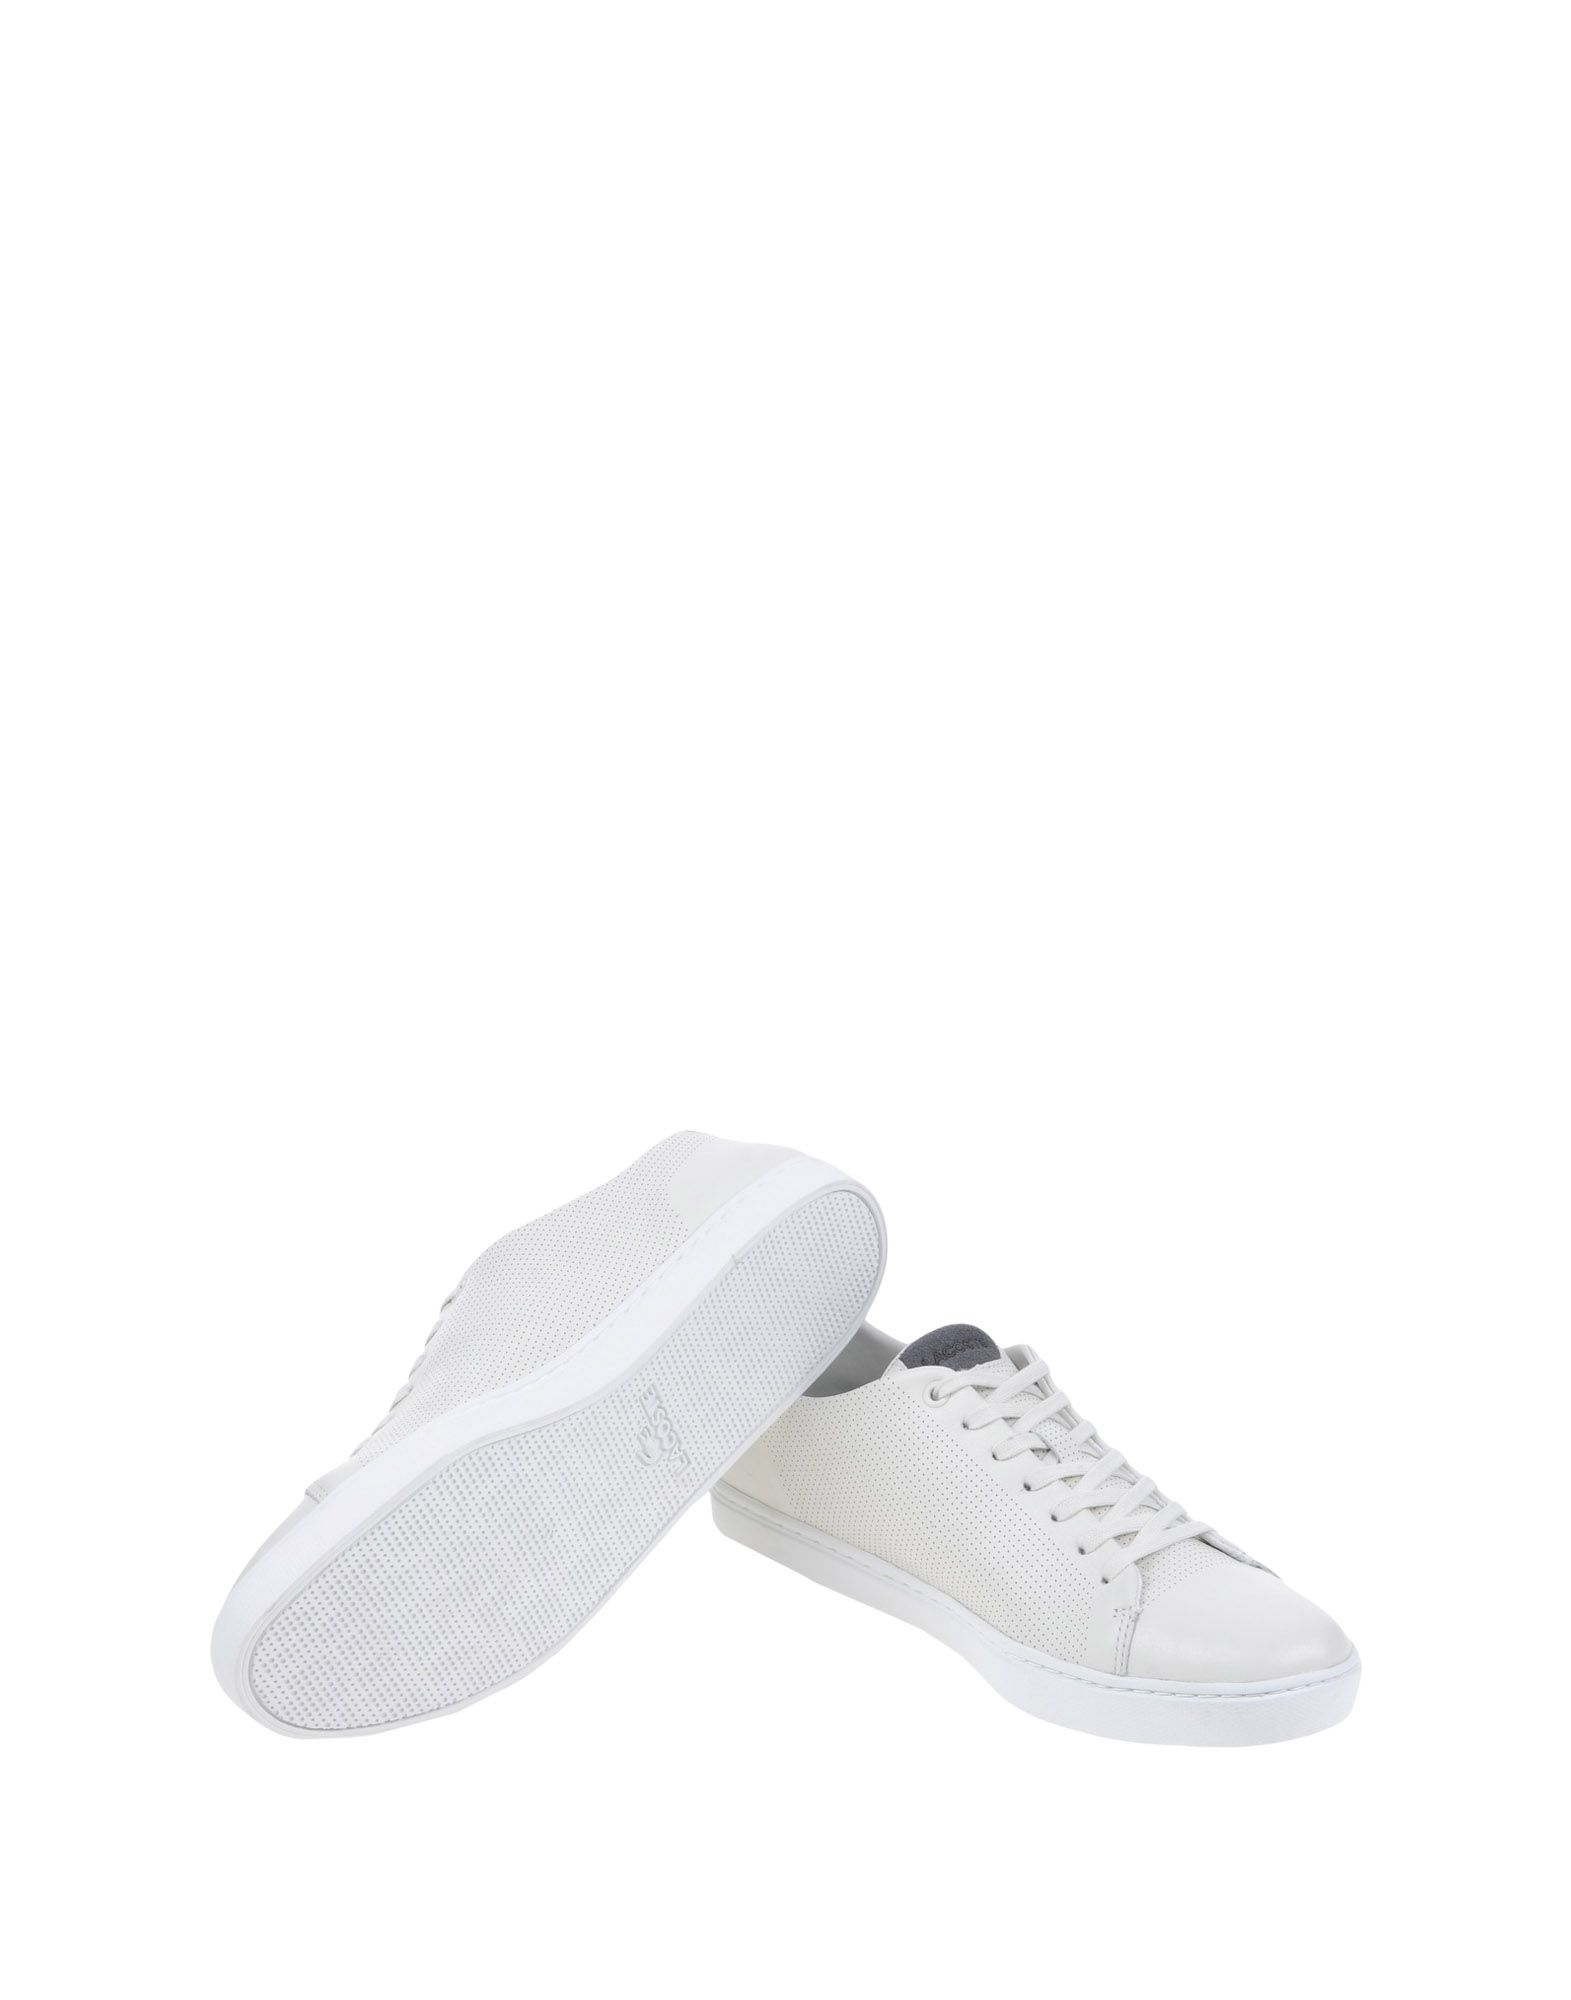 Sneakers Lacoste Showcourt 116 1 - Homme - Sneakers Lacoste sur